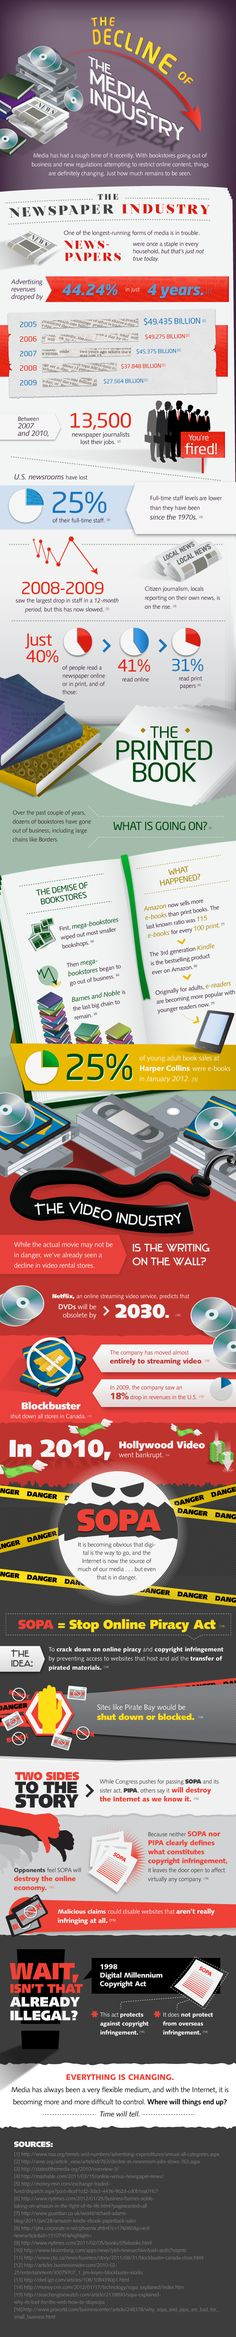 The Decline of the Media Industry #infographics     The state of newspapers, printed books, video industries